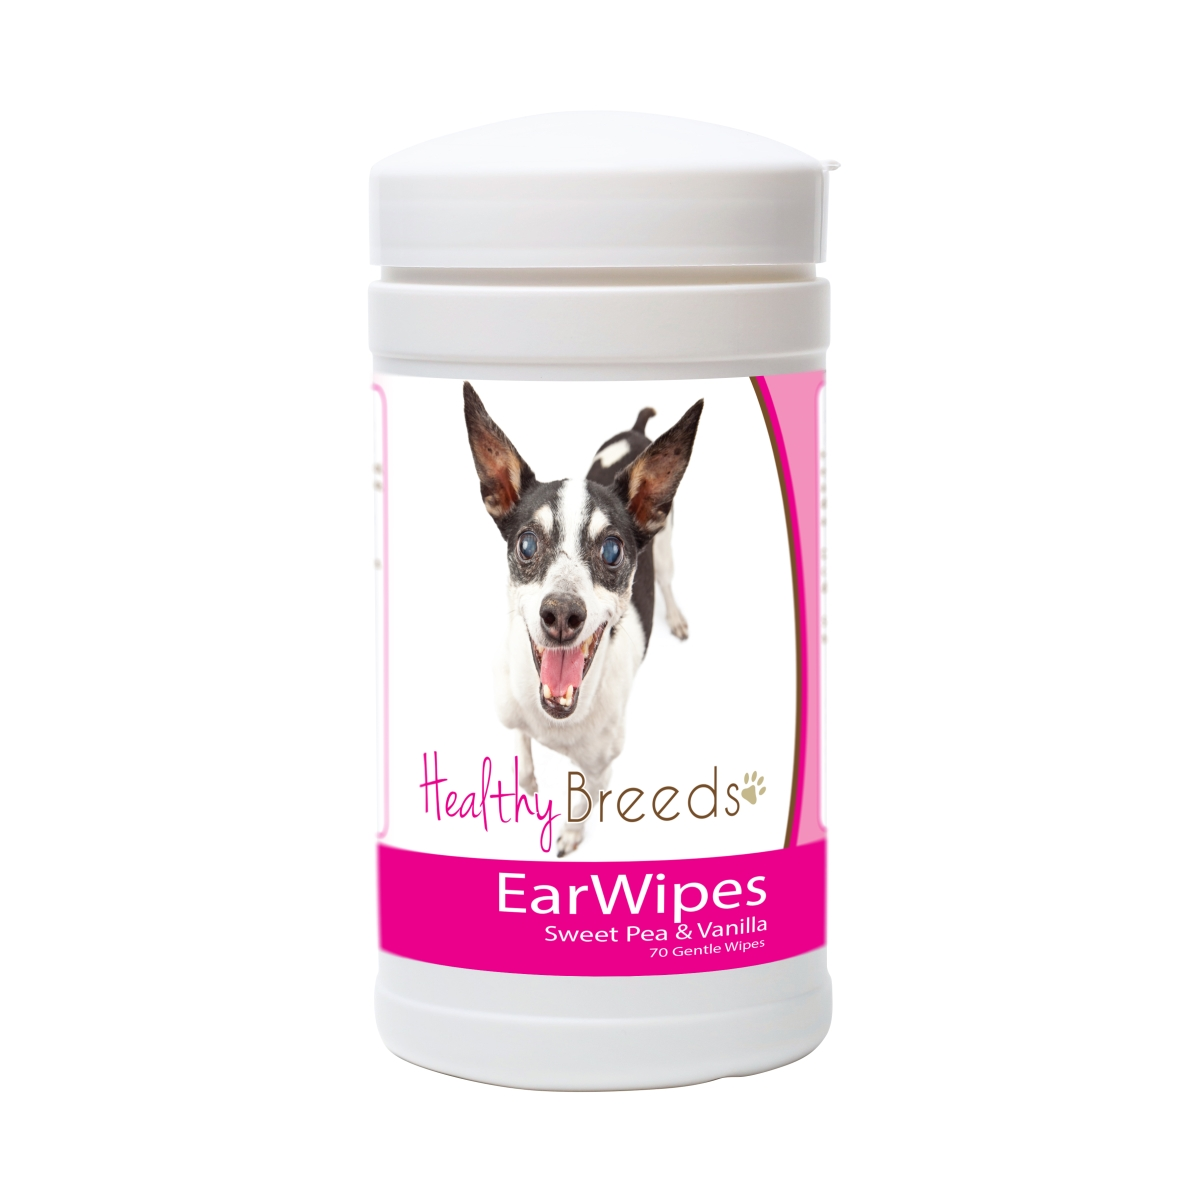 Healthy Breeds 840235181095 Rat Terrier Ear Wipes - 70 Count